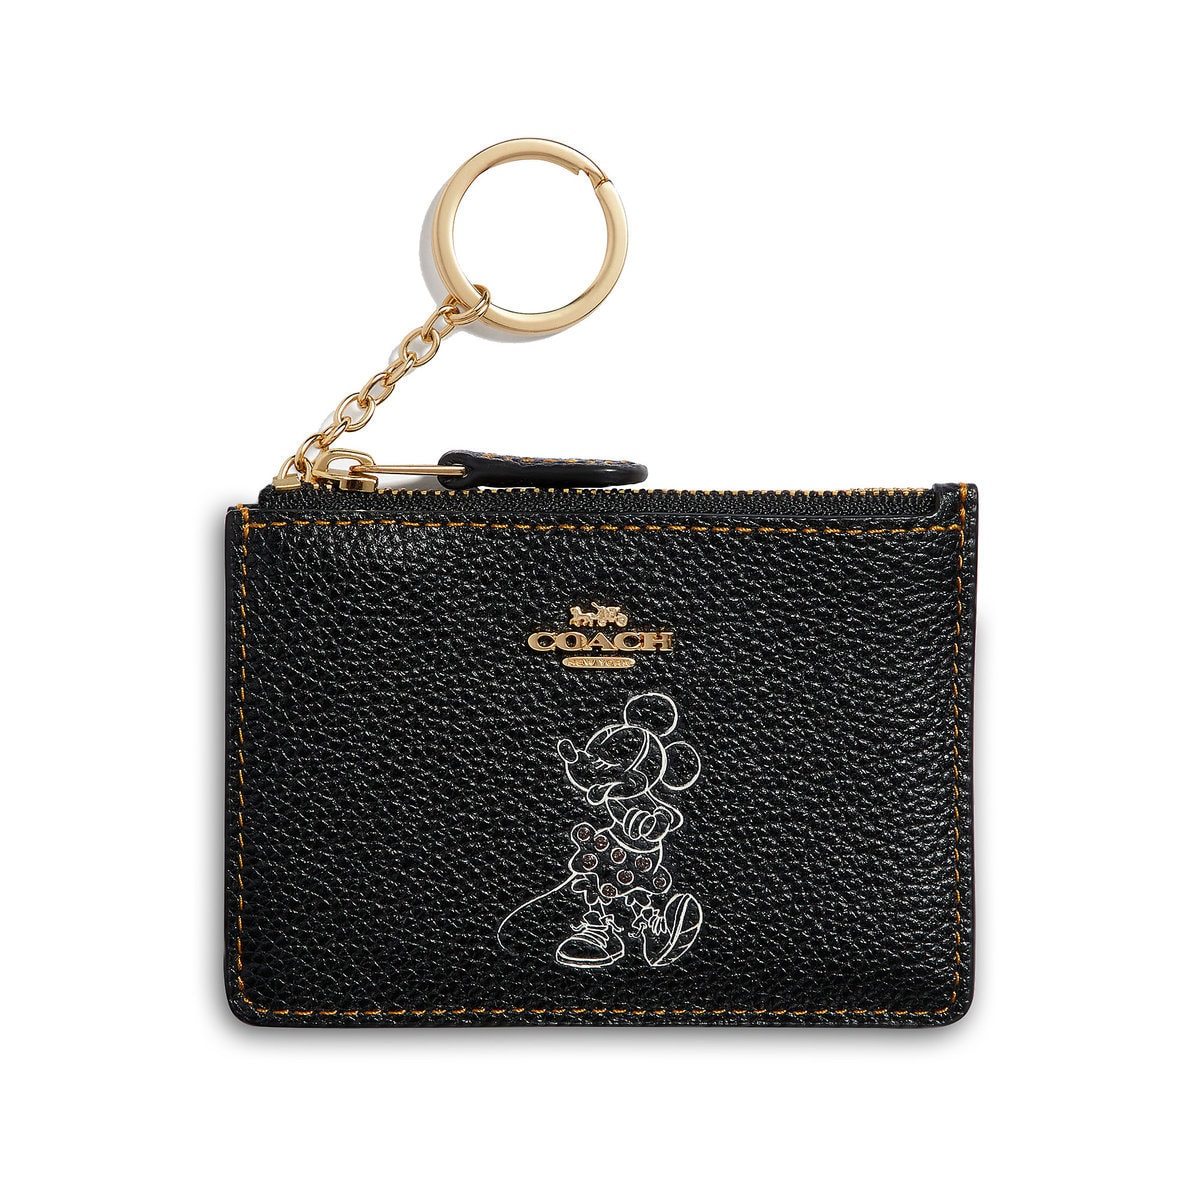 6c8876fee Product Image of Minnie Mouse ID Case by COACH # 1